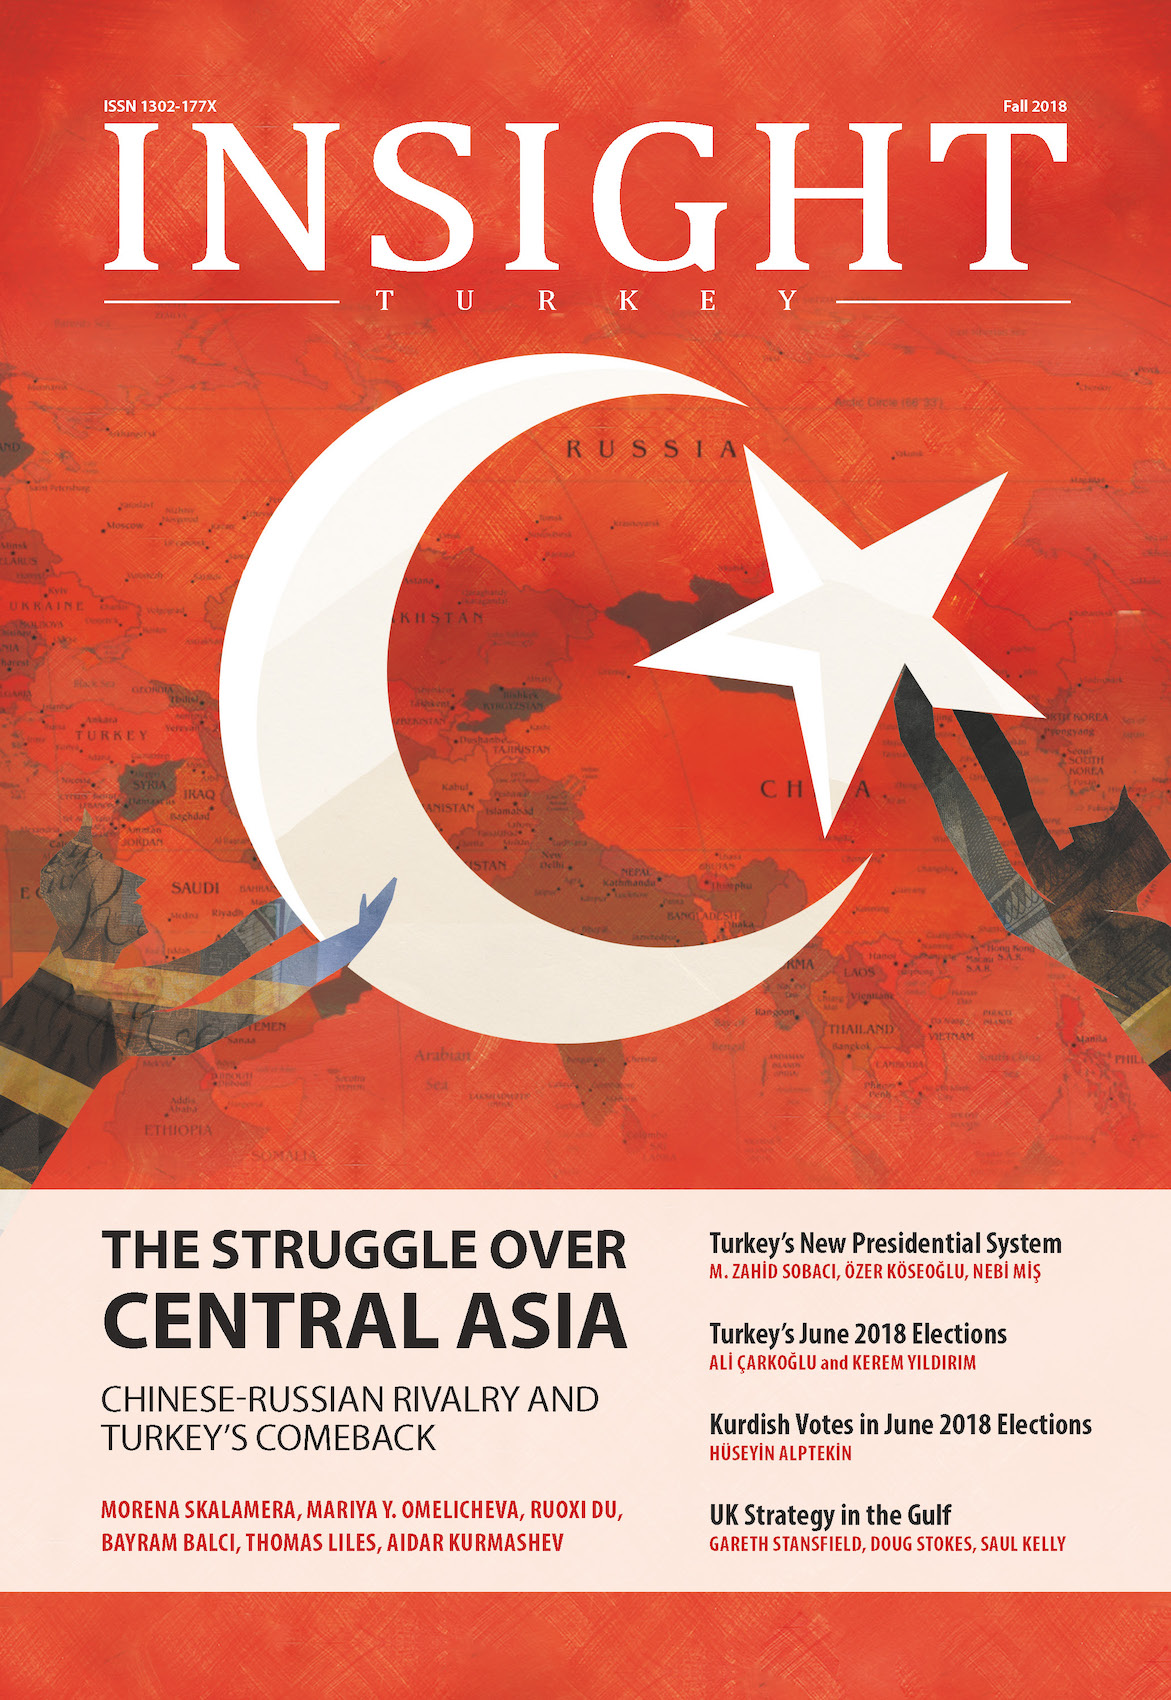 The Struggle over Central Asia Chinese-Russian Rivalry and Turkey's Comeback